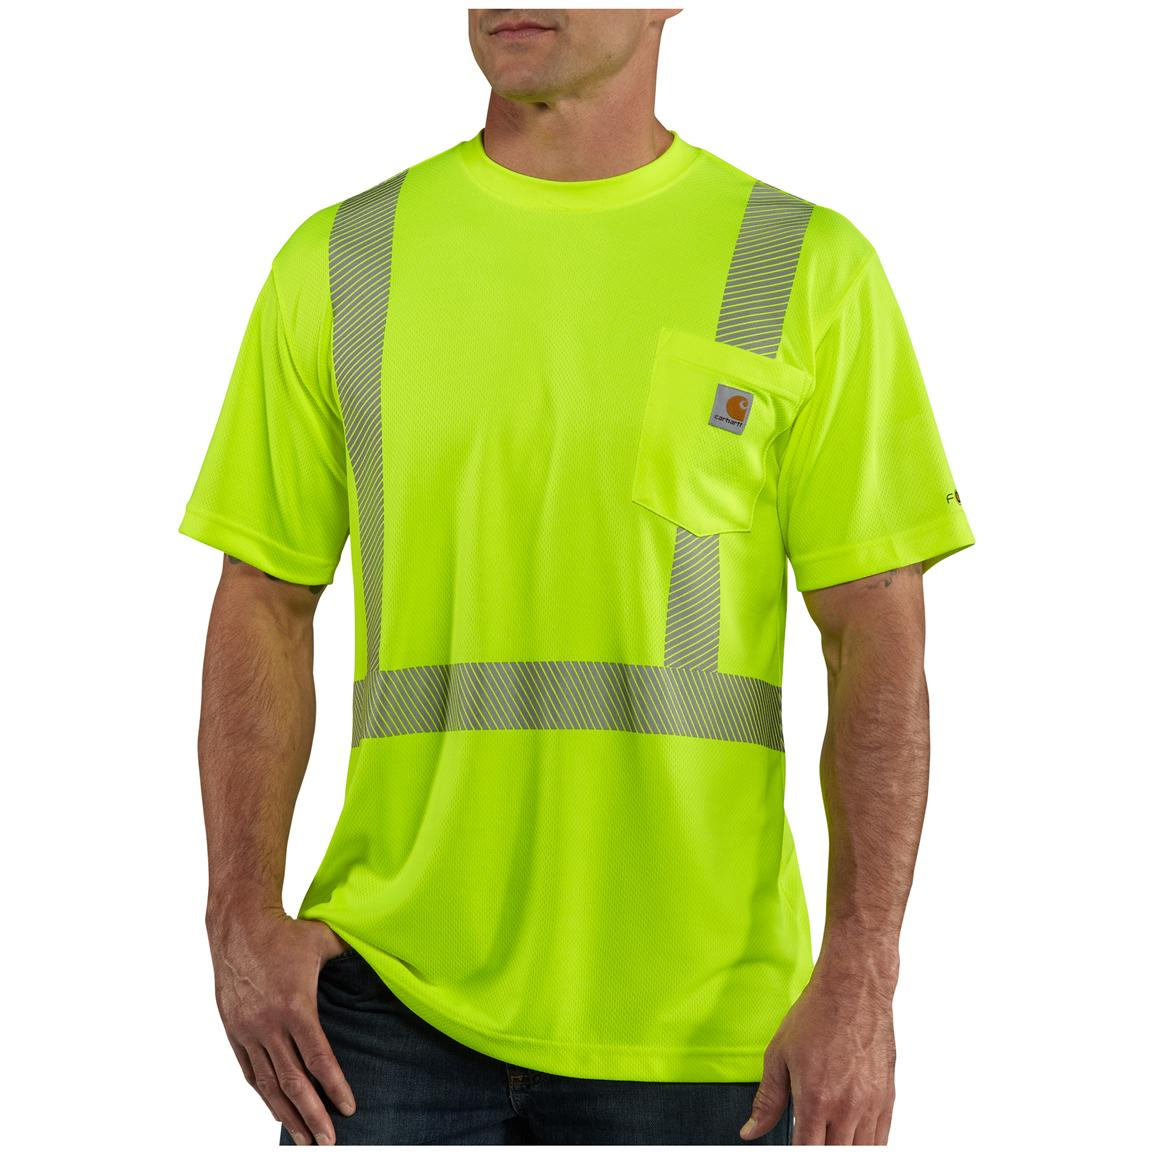 Men's Carhartt® Force™ Class 2 High-visibility T-shirt, Brite Lime